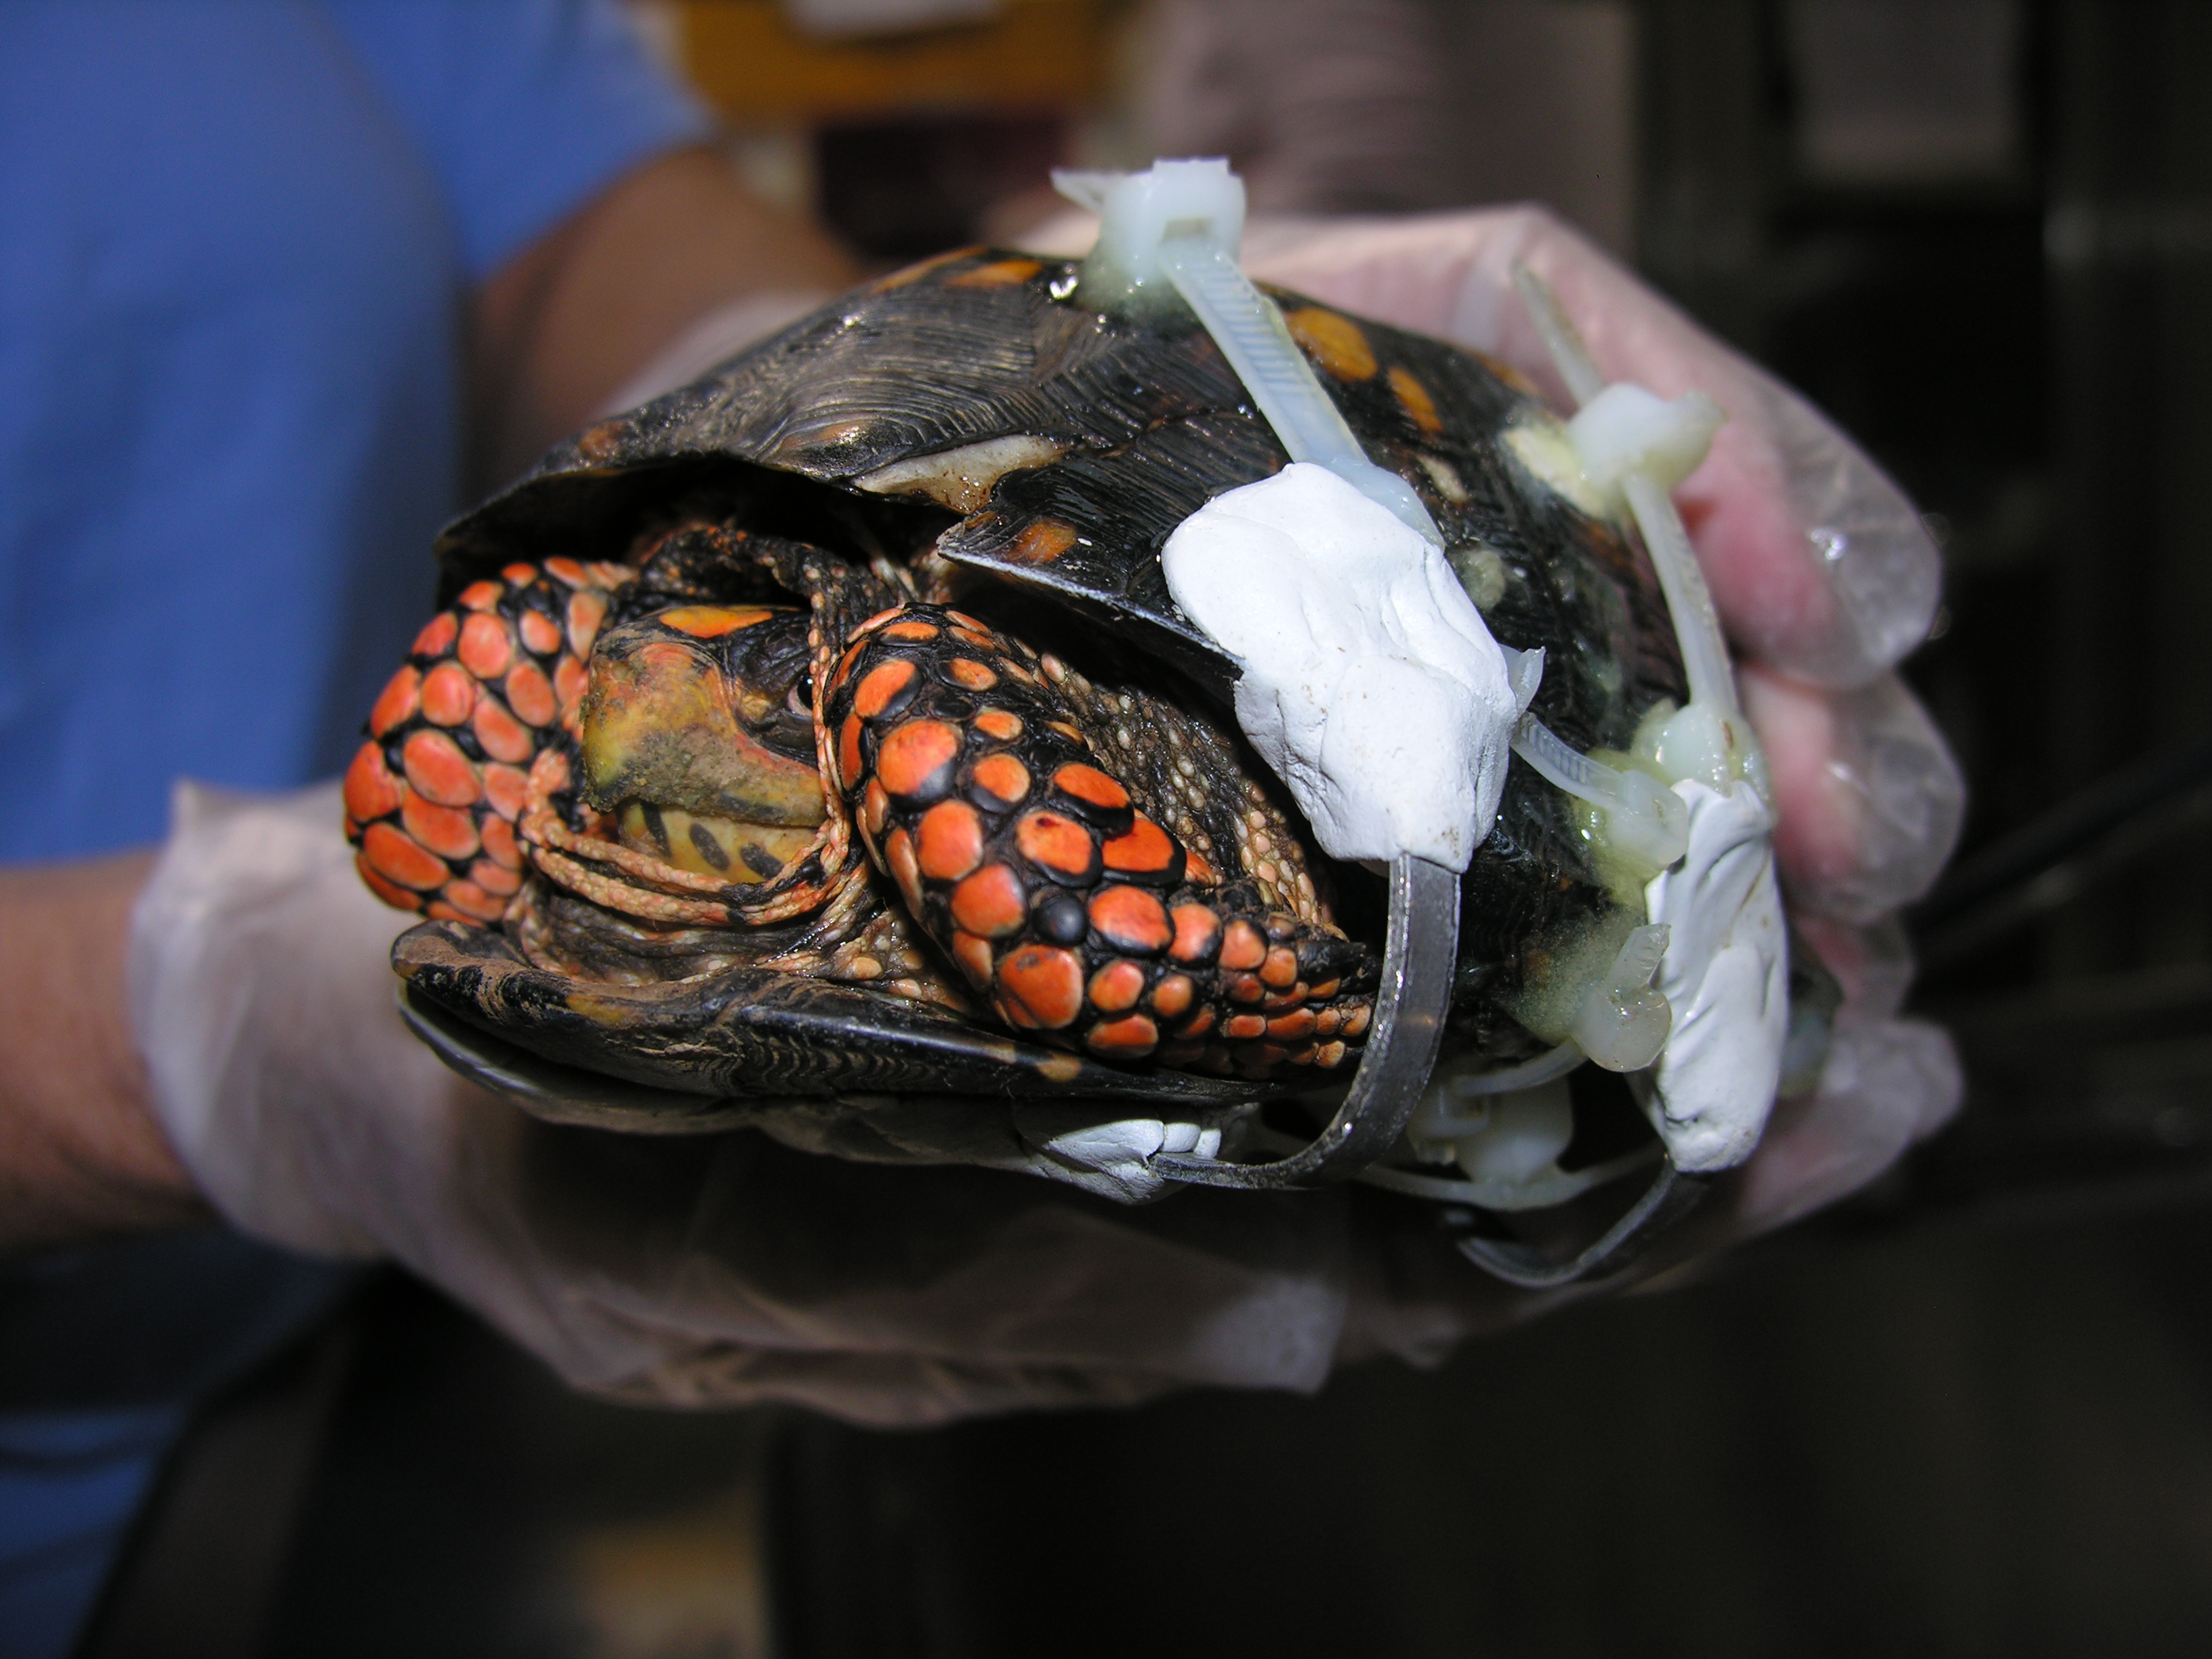 Eastern Box Turtle, #10-2098 | The Wildlife Center of Virginia